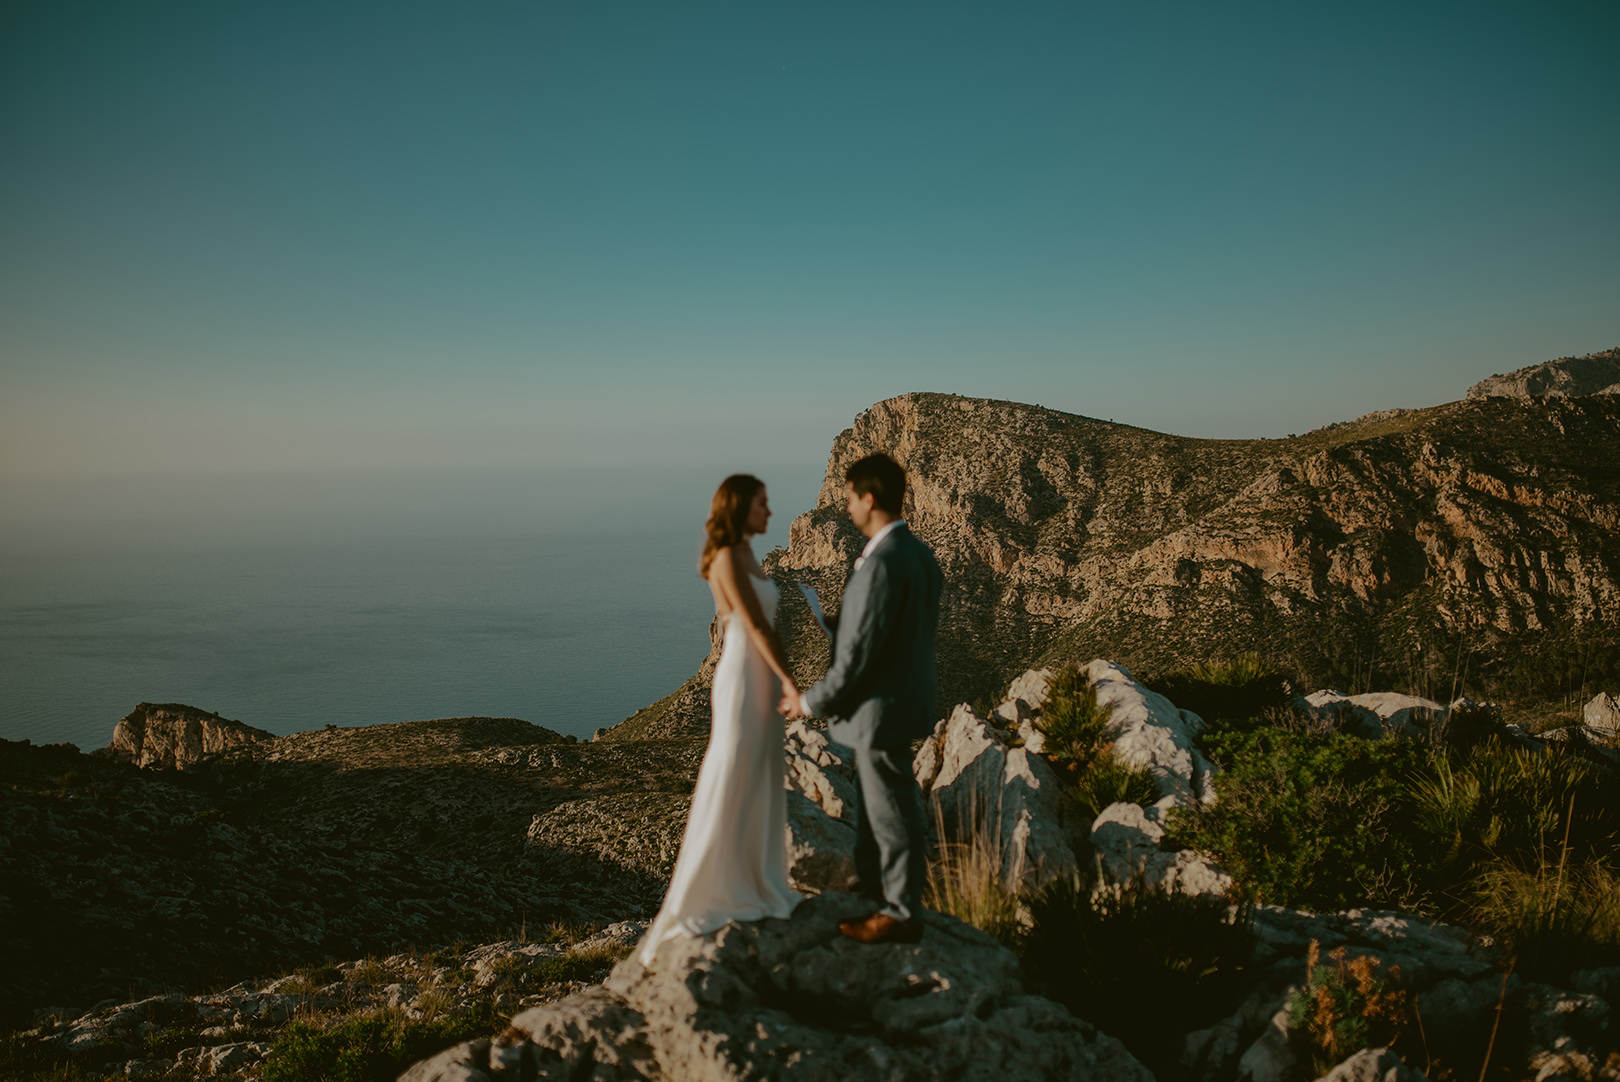 most beautiful wedding locations spain